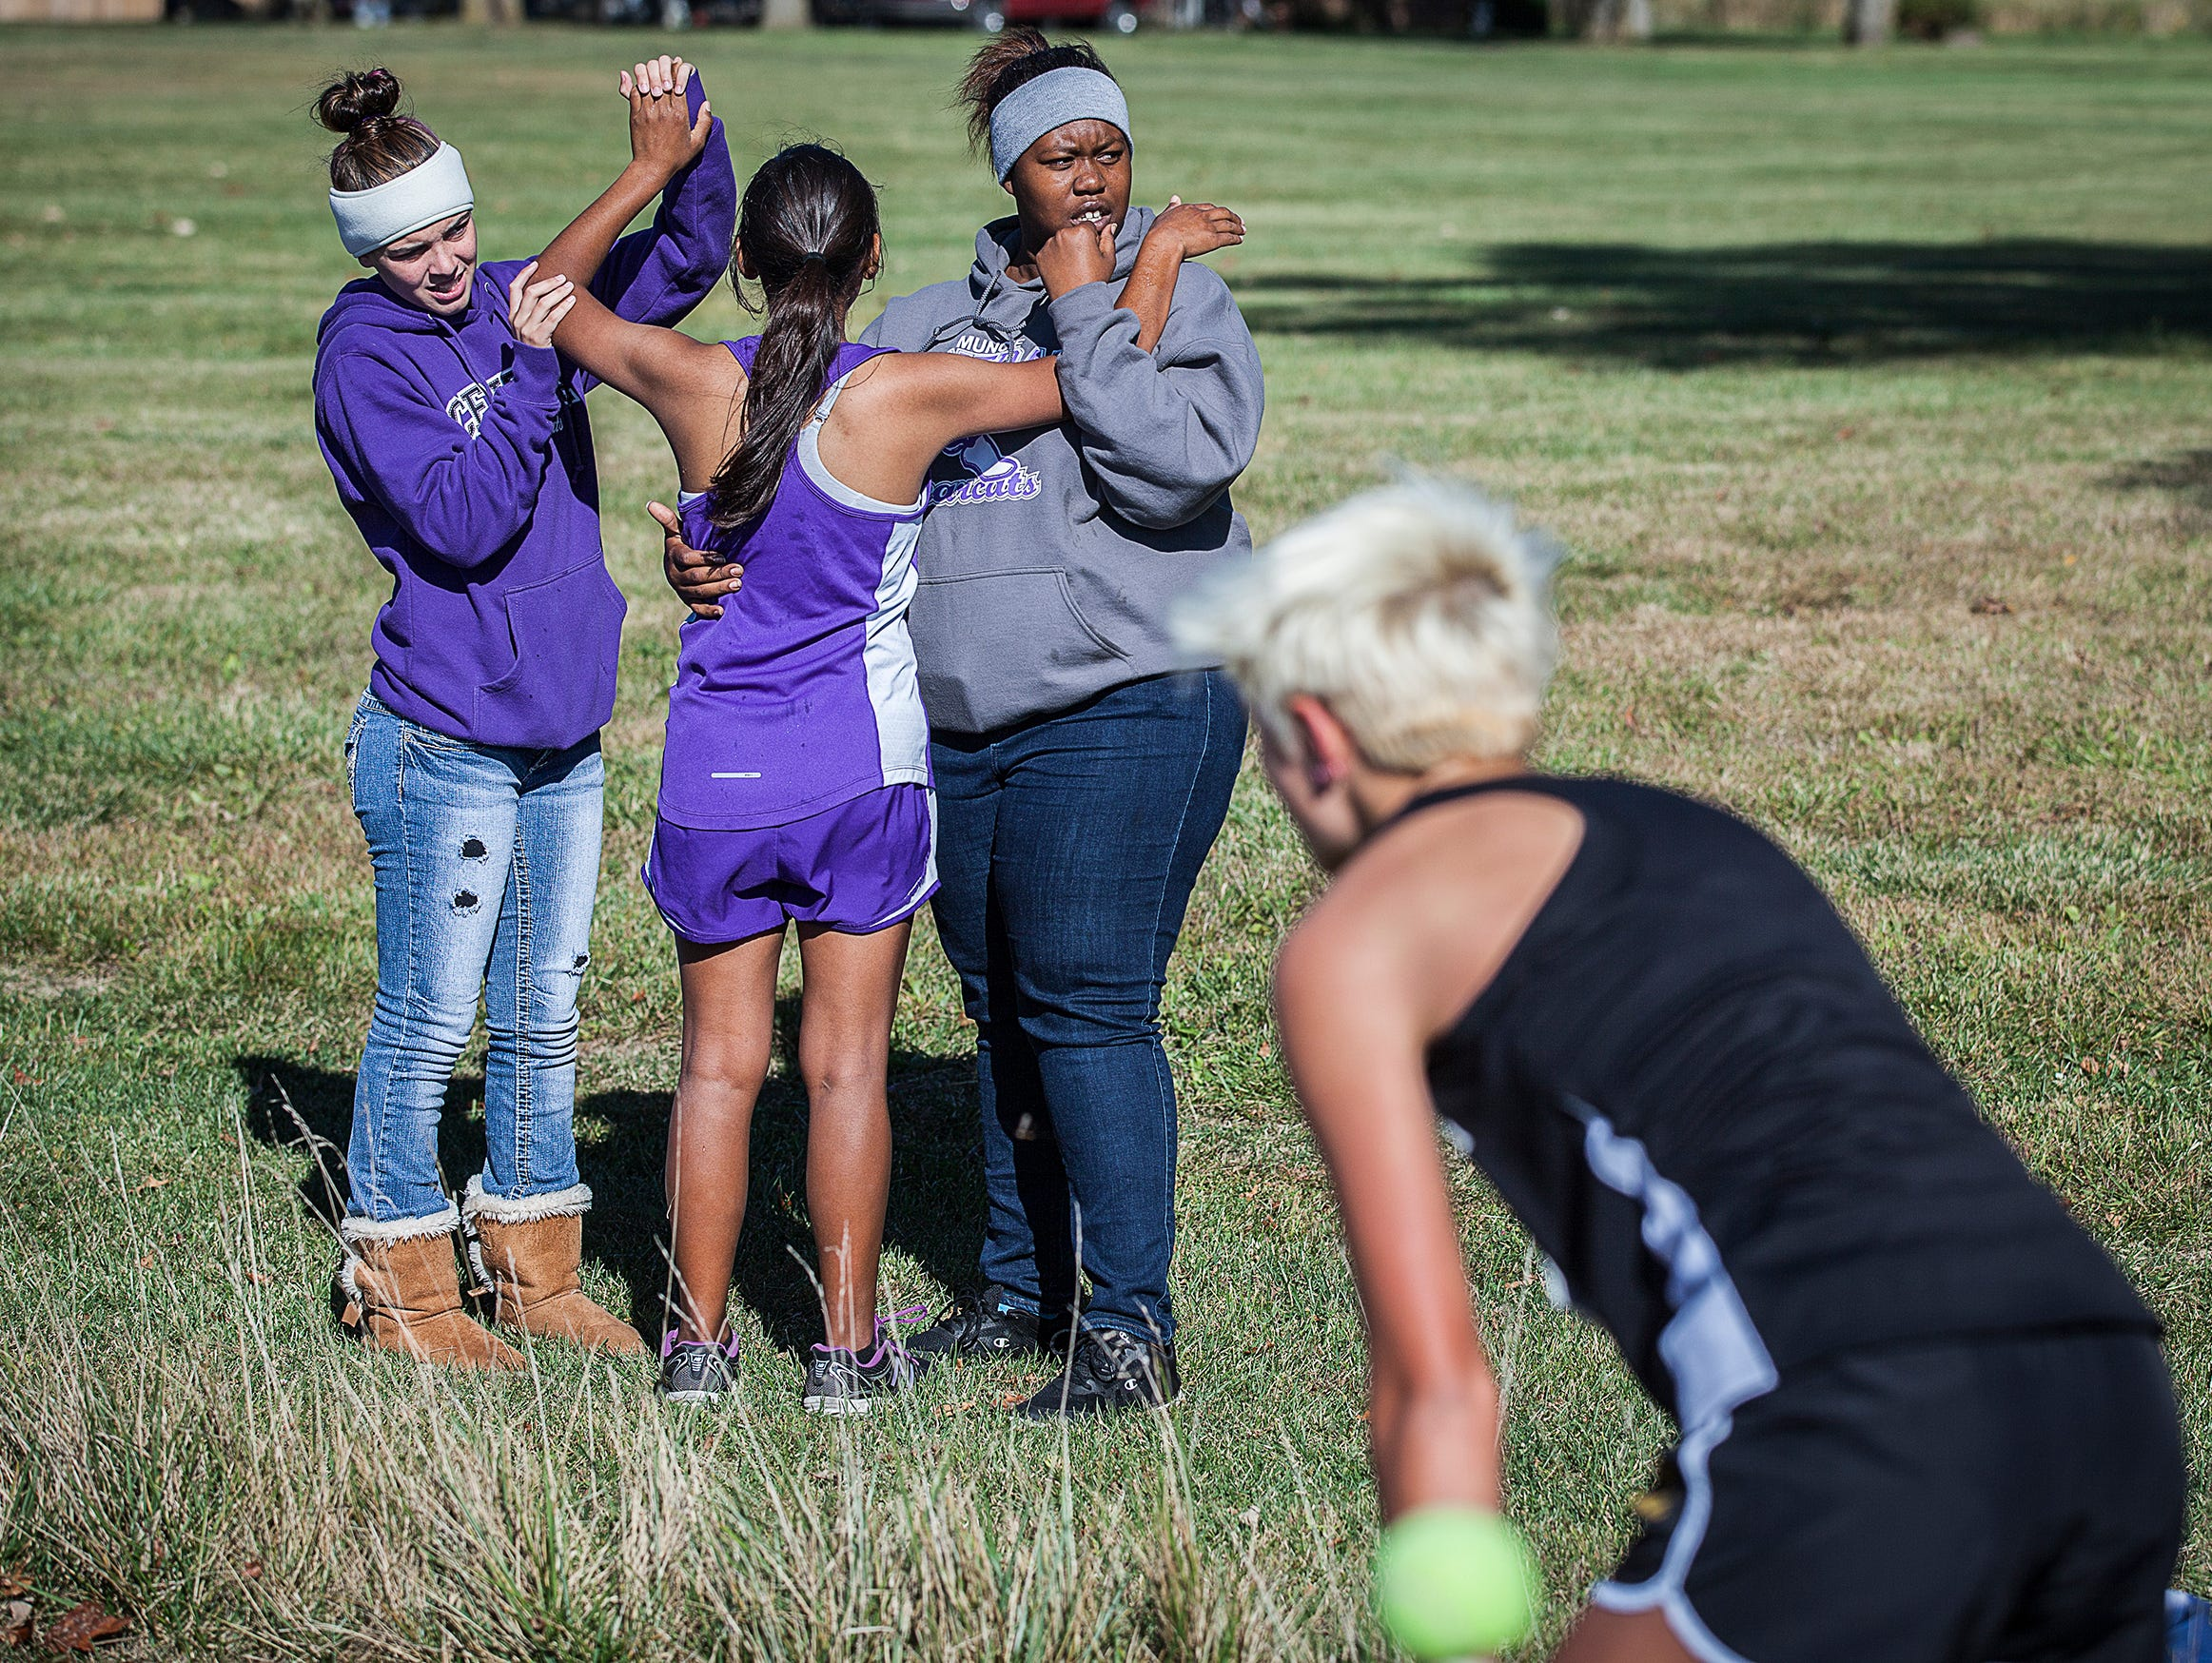 Female racers finish during the cross country sectionals at the Sportsplex in Muncie on Saturday, Oct. 10, 2015.